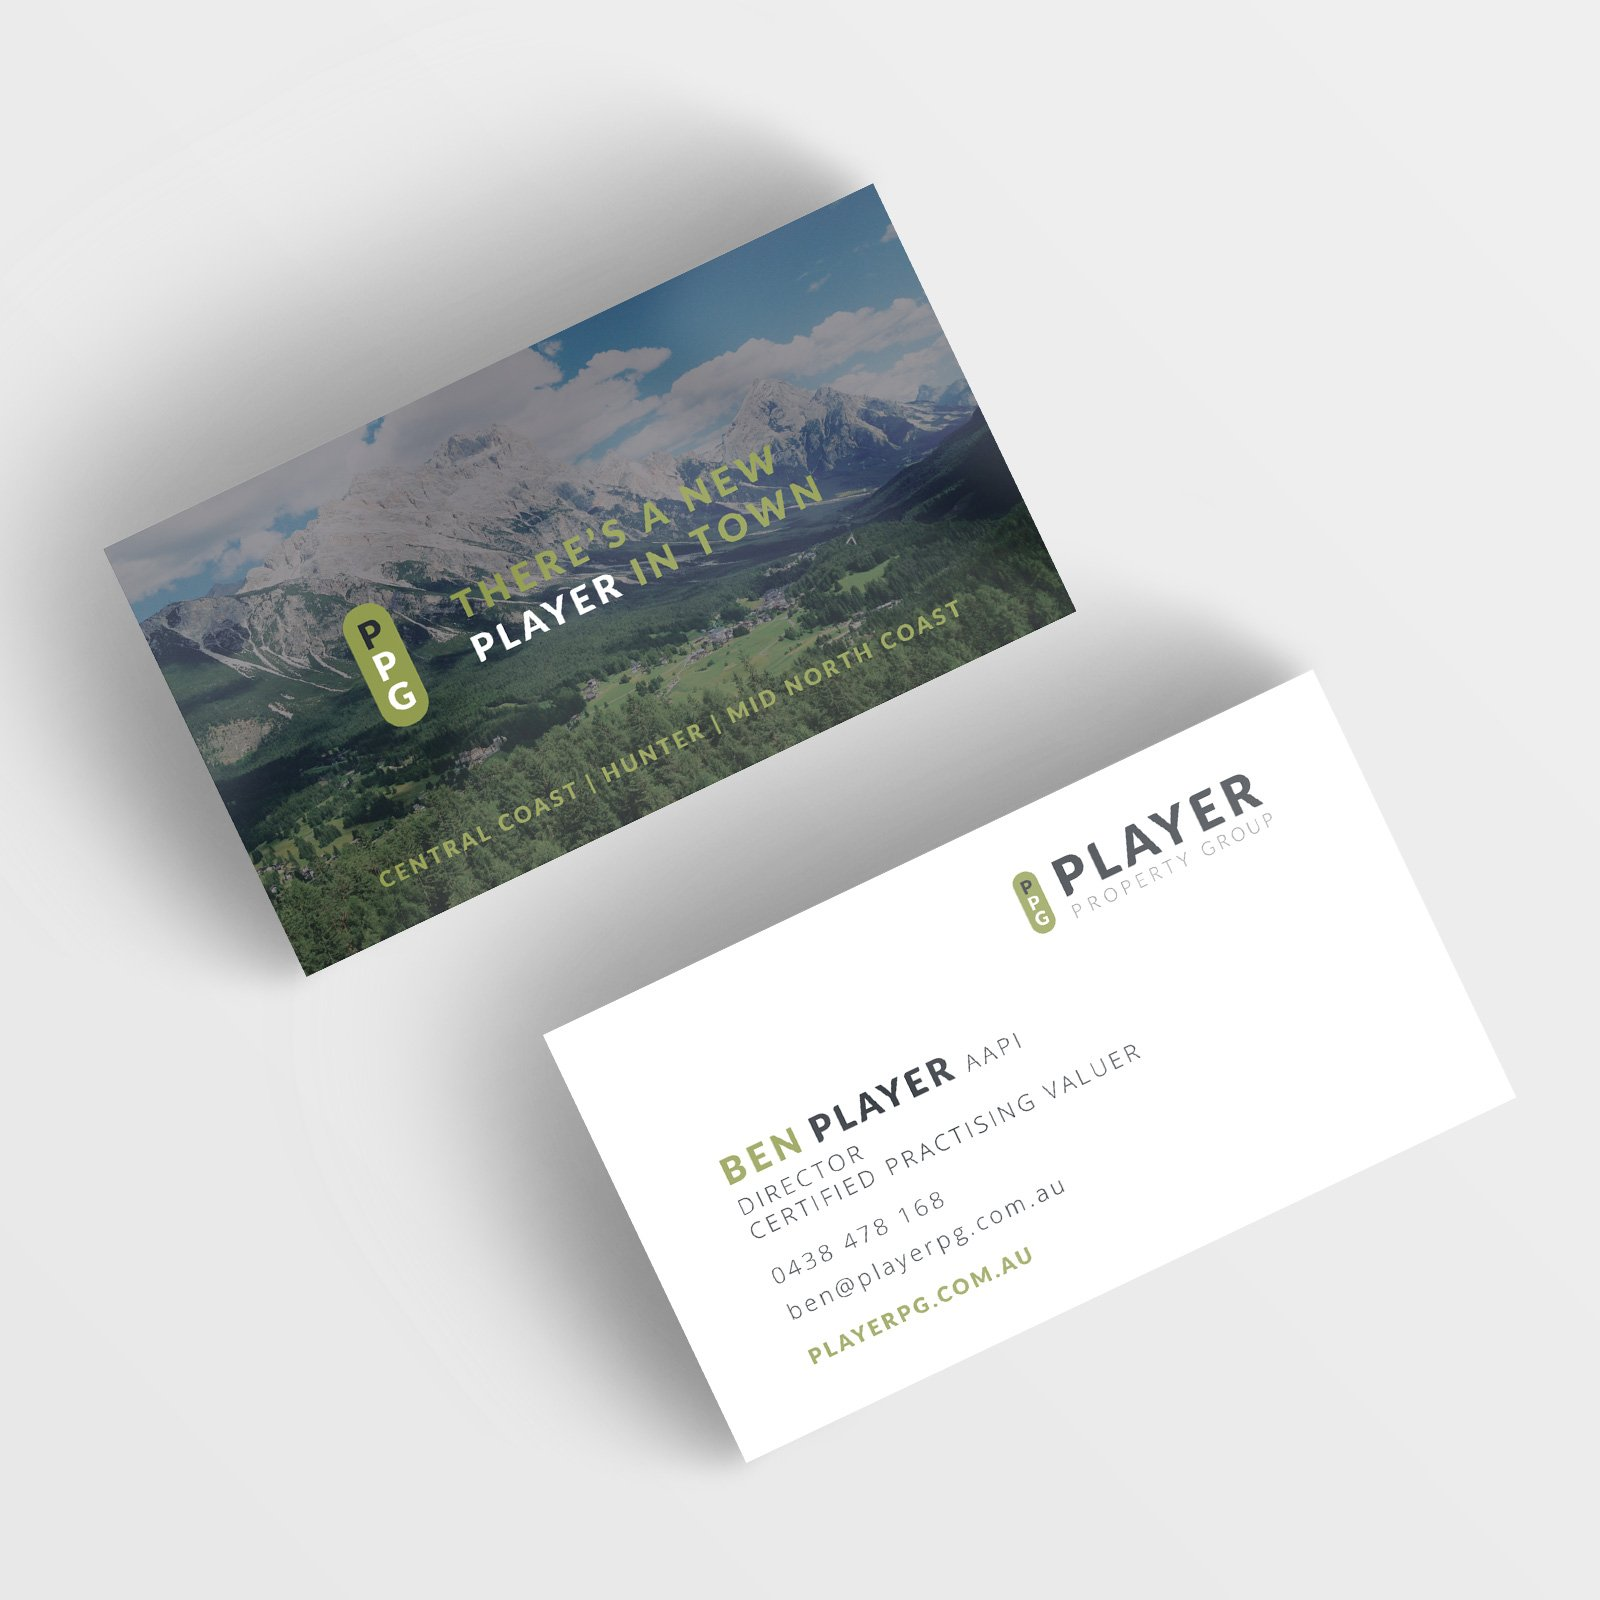 Player Property Group Business Cards